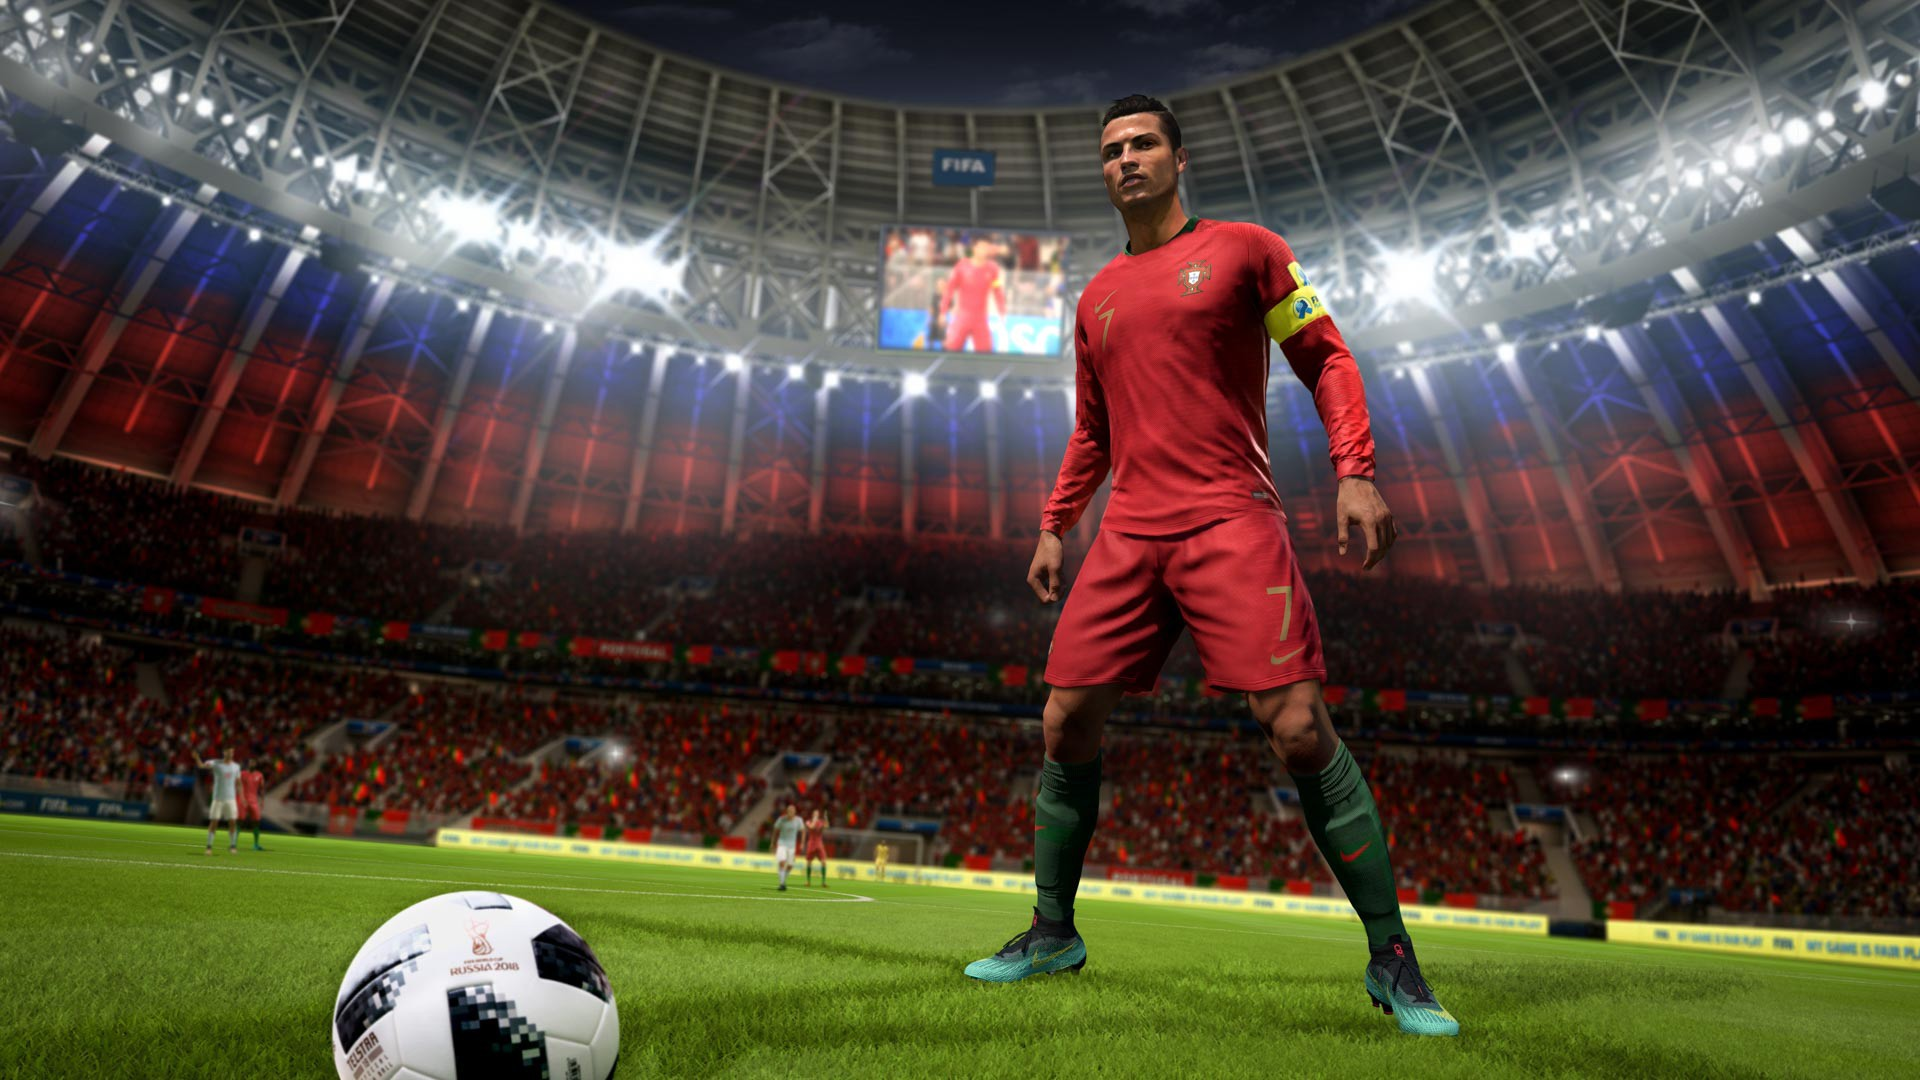 Find the best gaming PC for FIFA 18